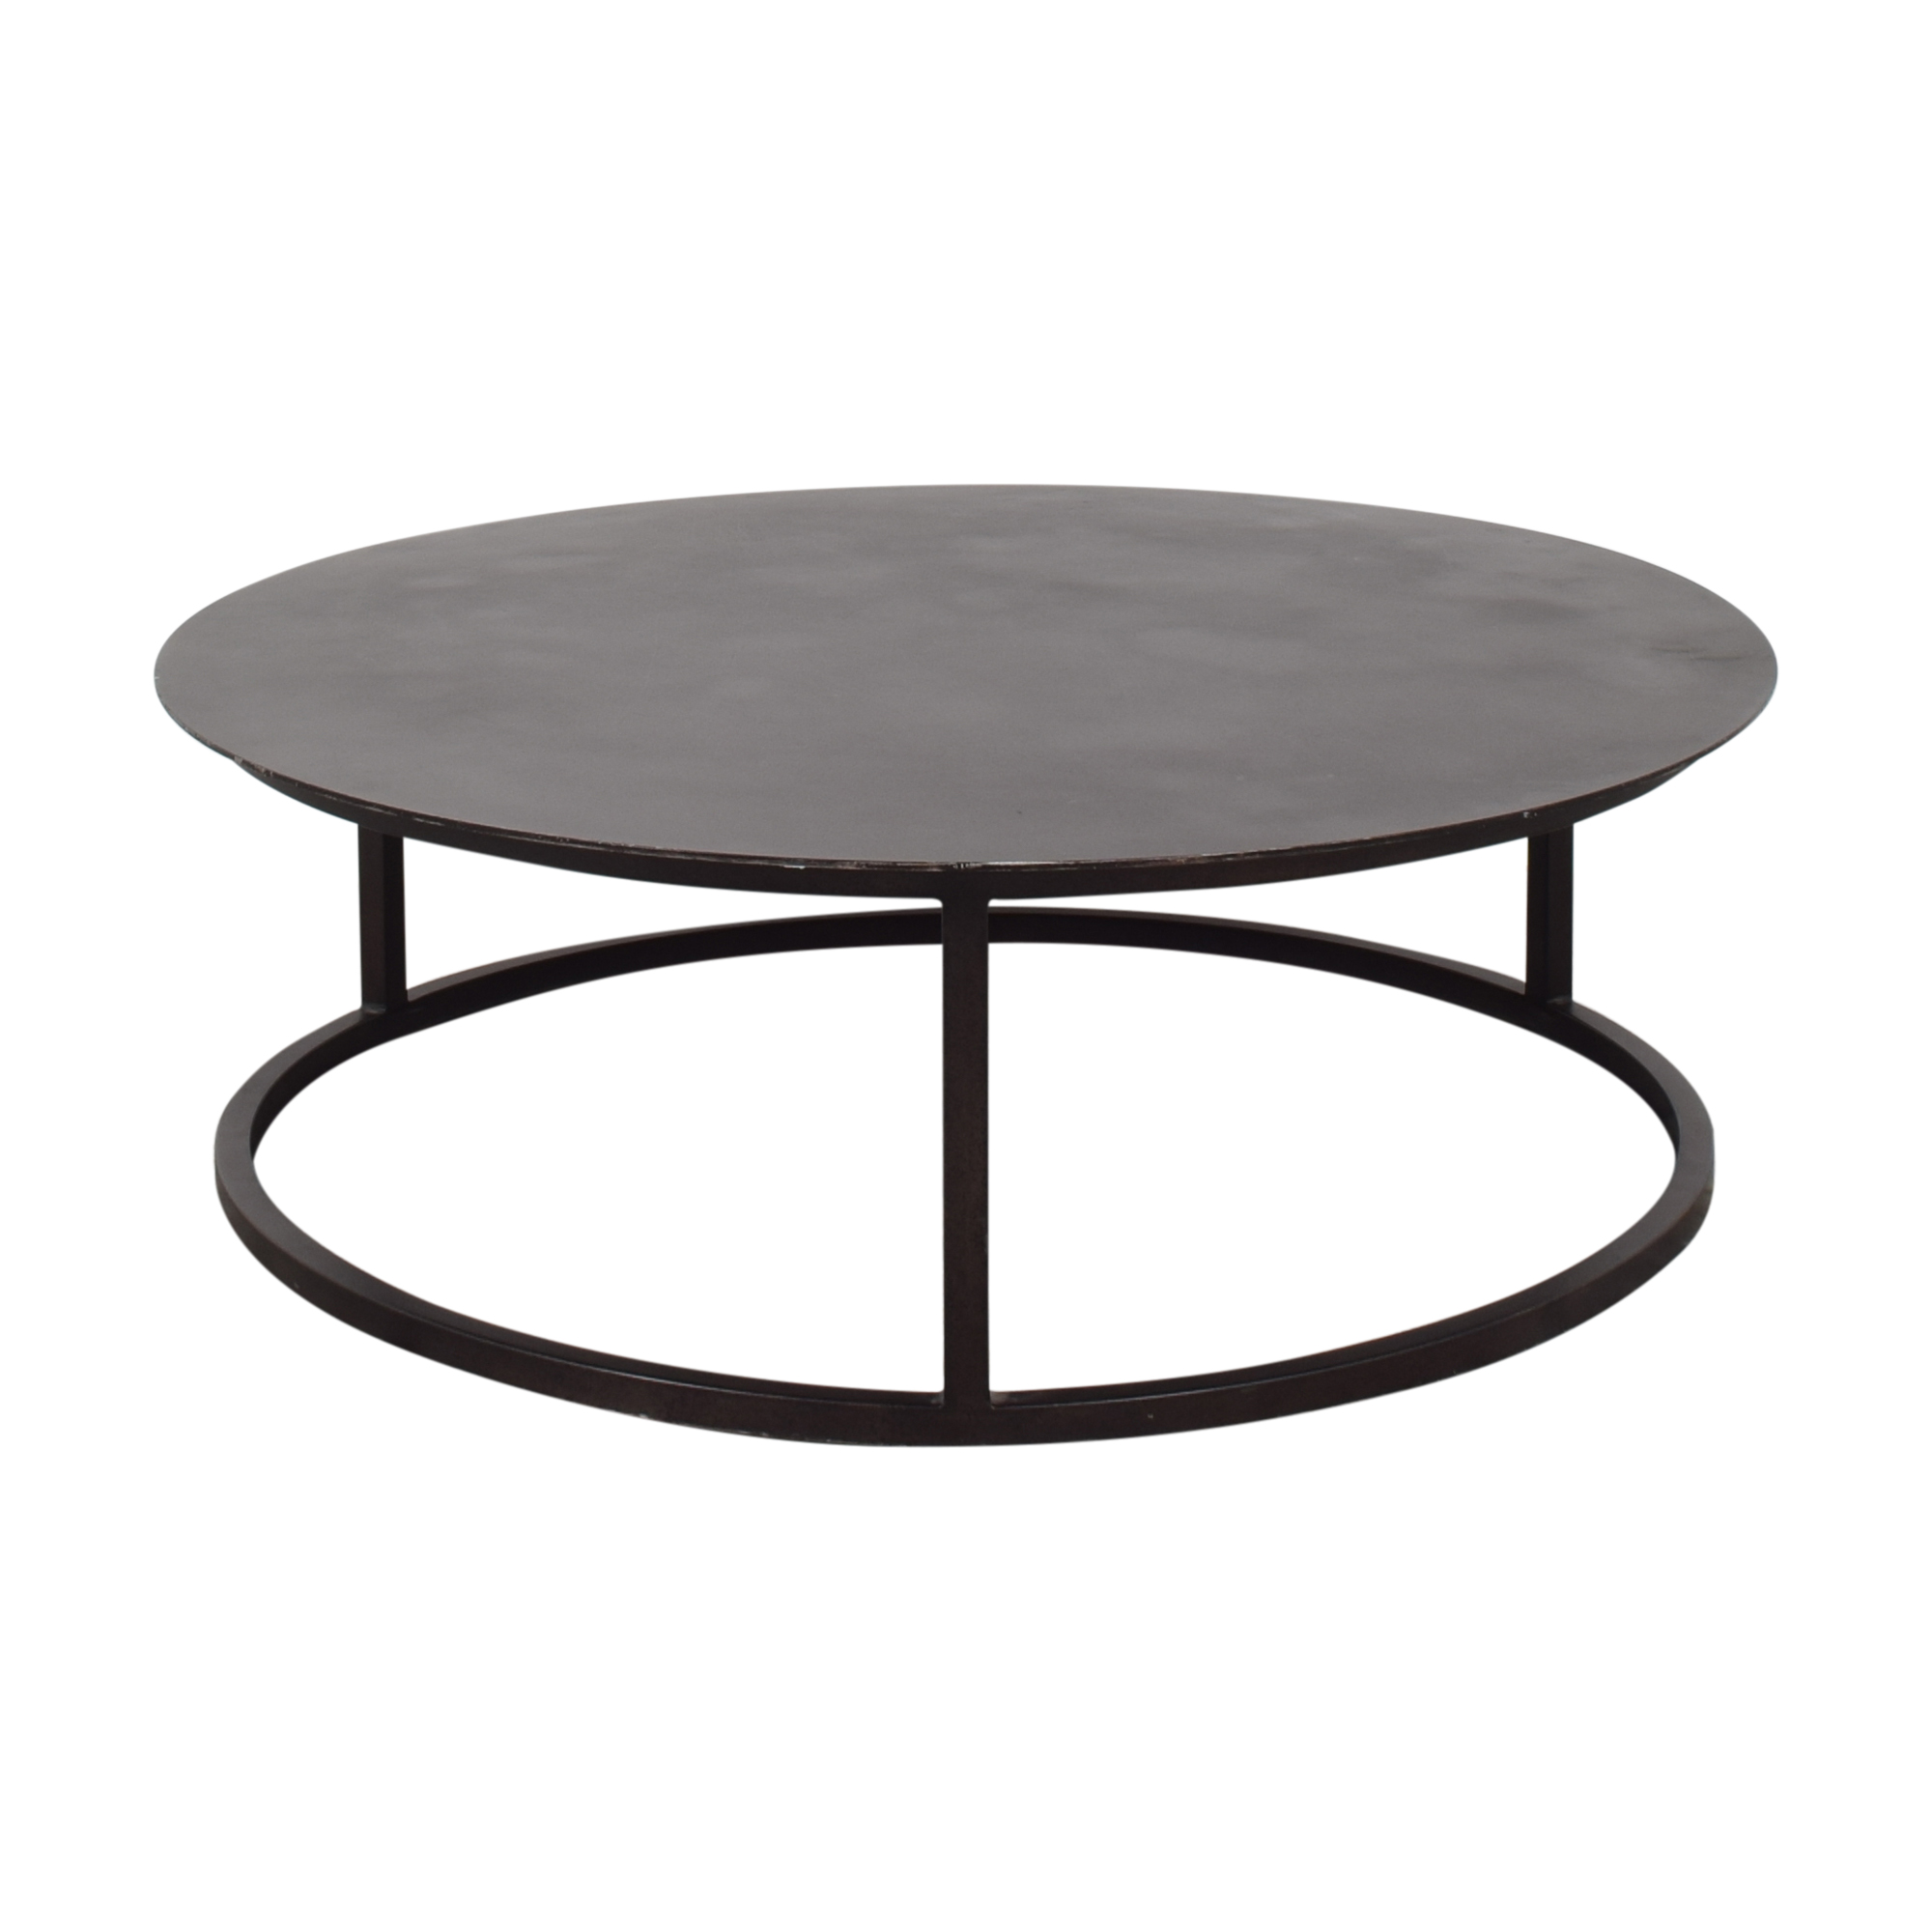 Restoration Hardware Restoration Hardware Mercer Round Coffee Table dimensions